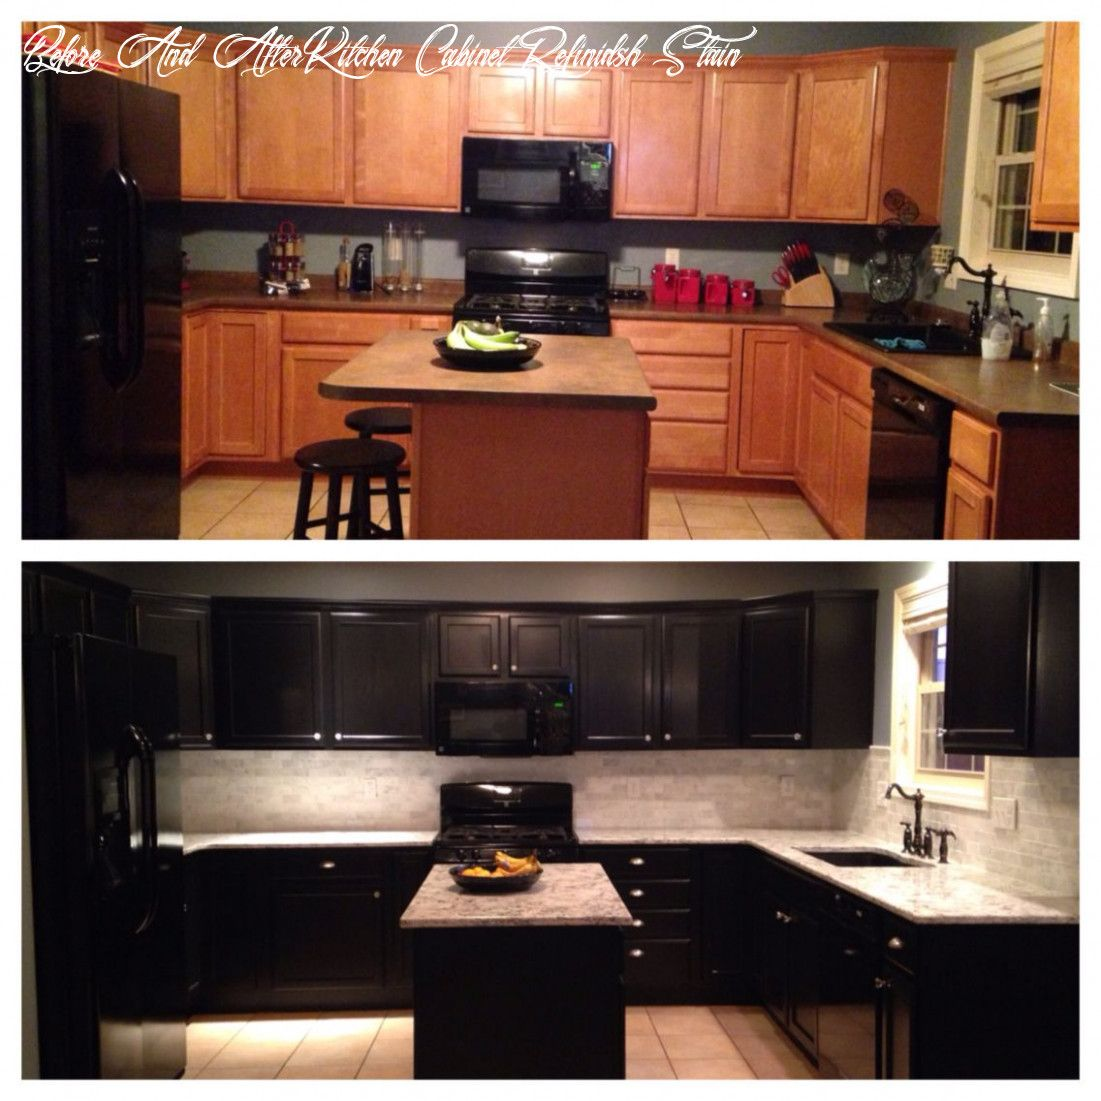 Before And After Kitchen Cabinet Refinidsh Stain In 2020 Diy Kitchen Cabinets Kitchen Cabinets Before And After Kitchen Cabinets Painted Before And After